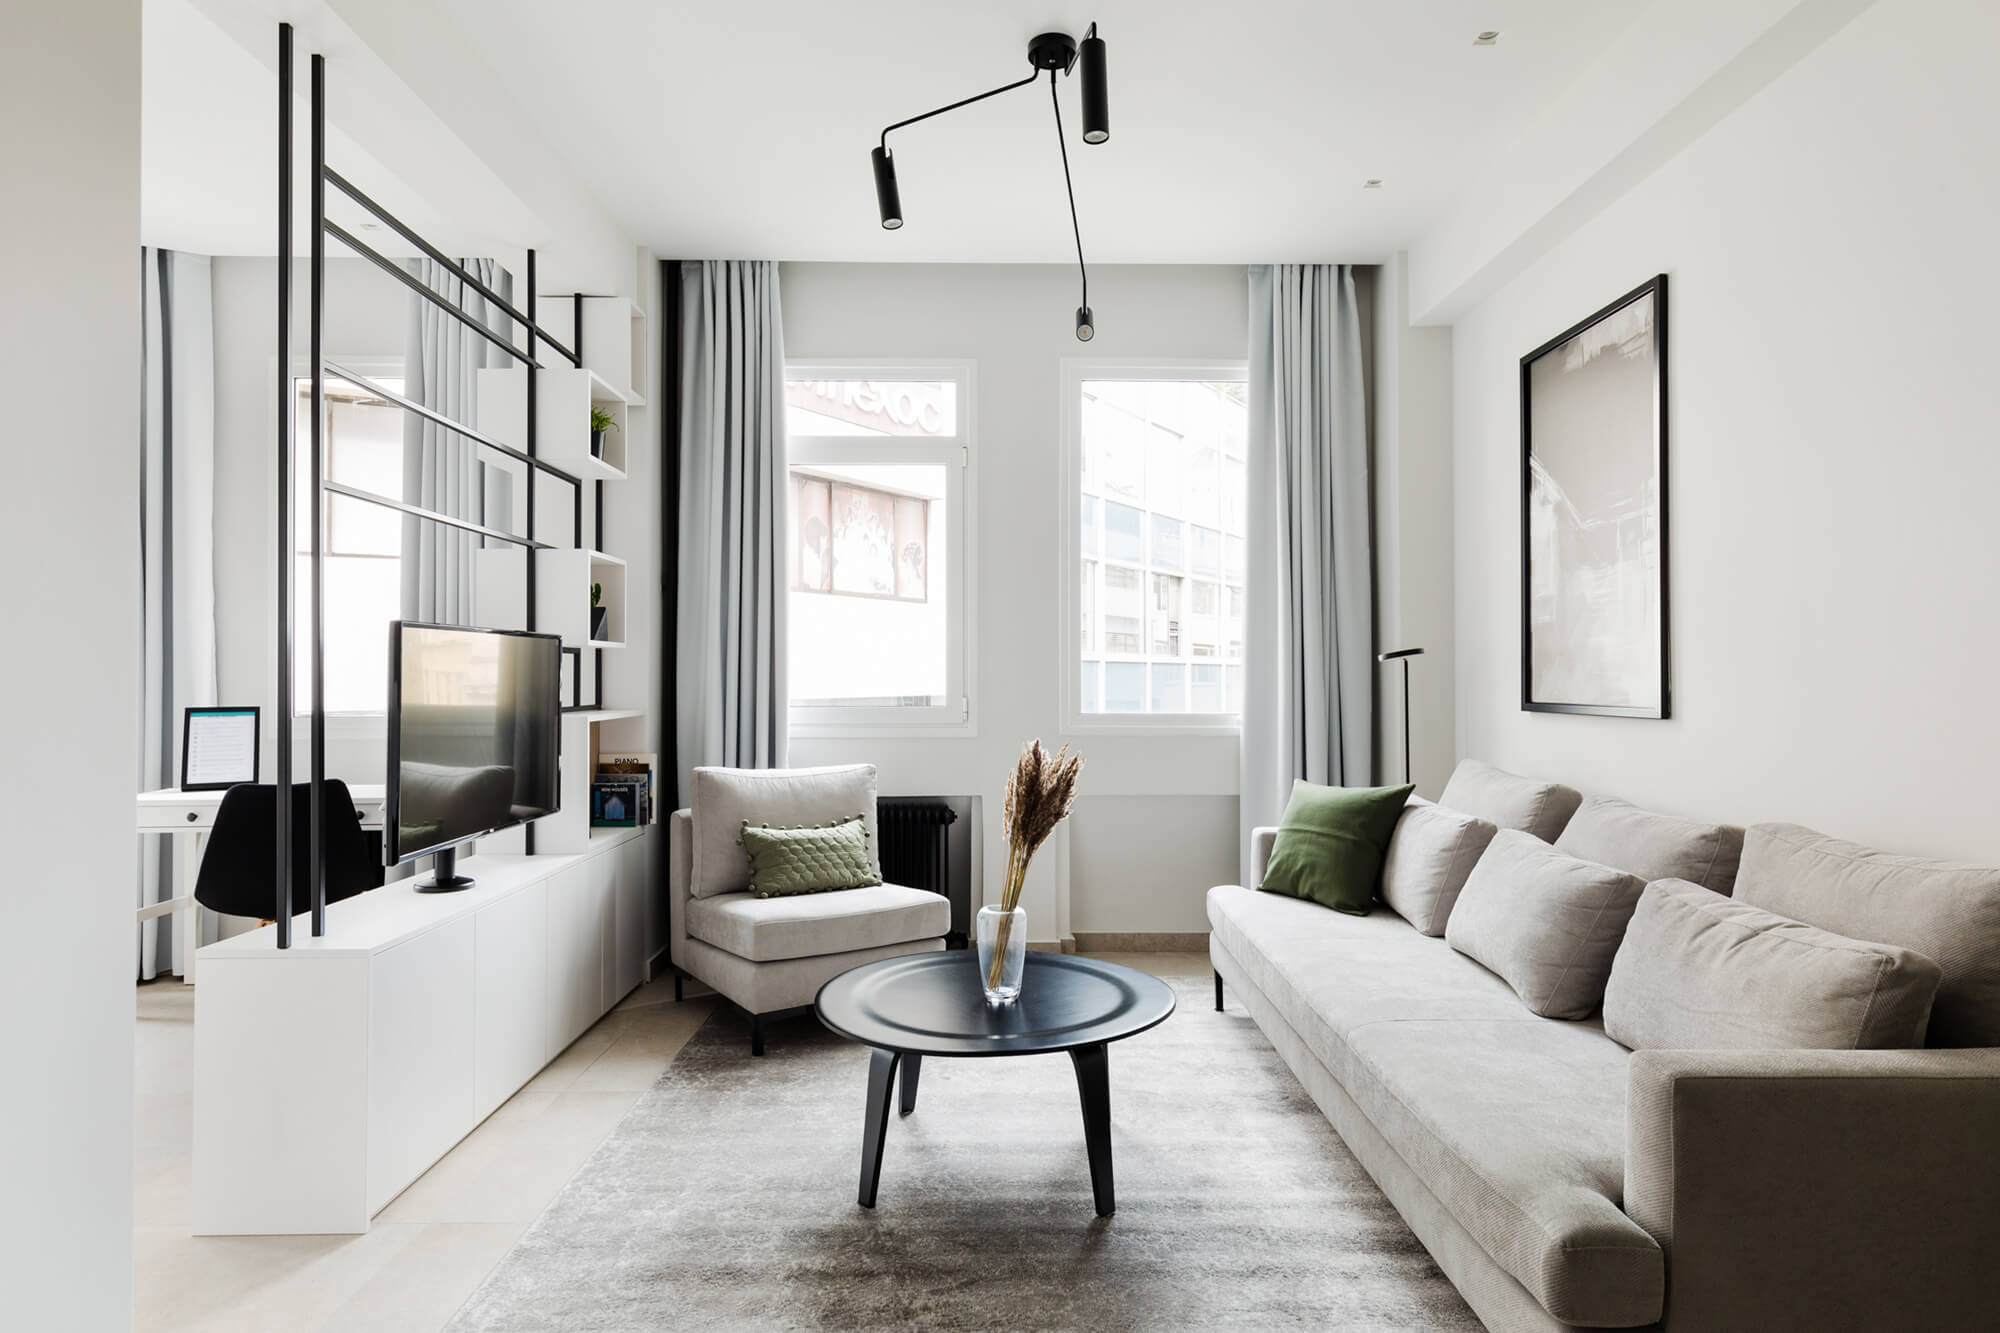 Luxury 1BR Apartment – A